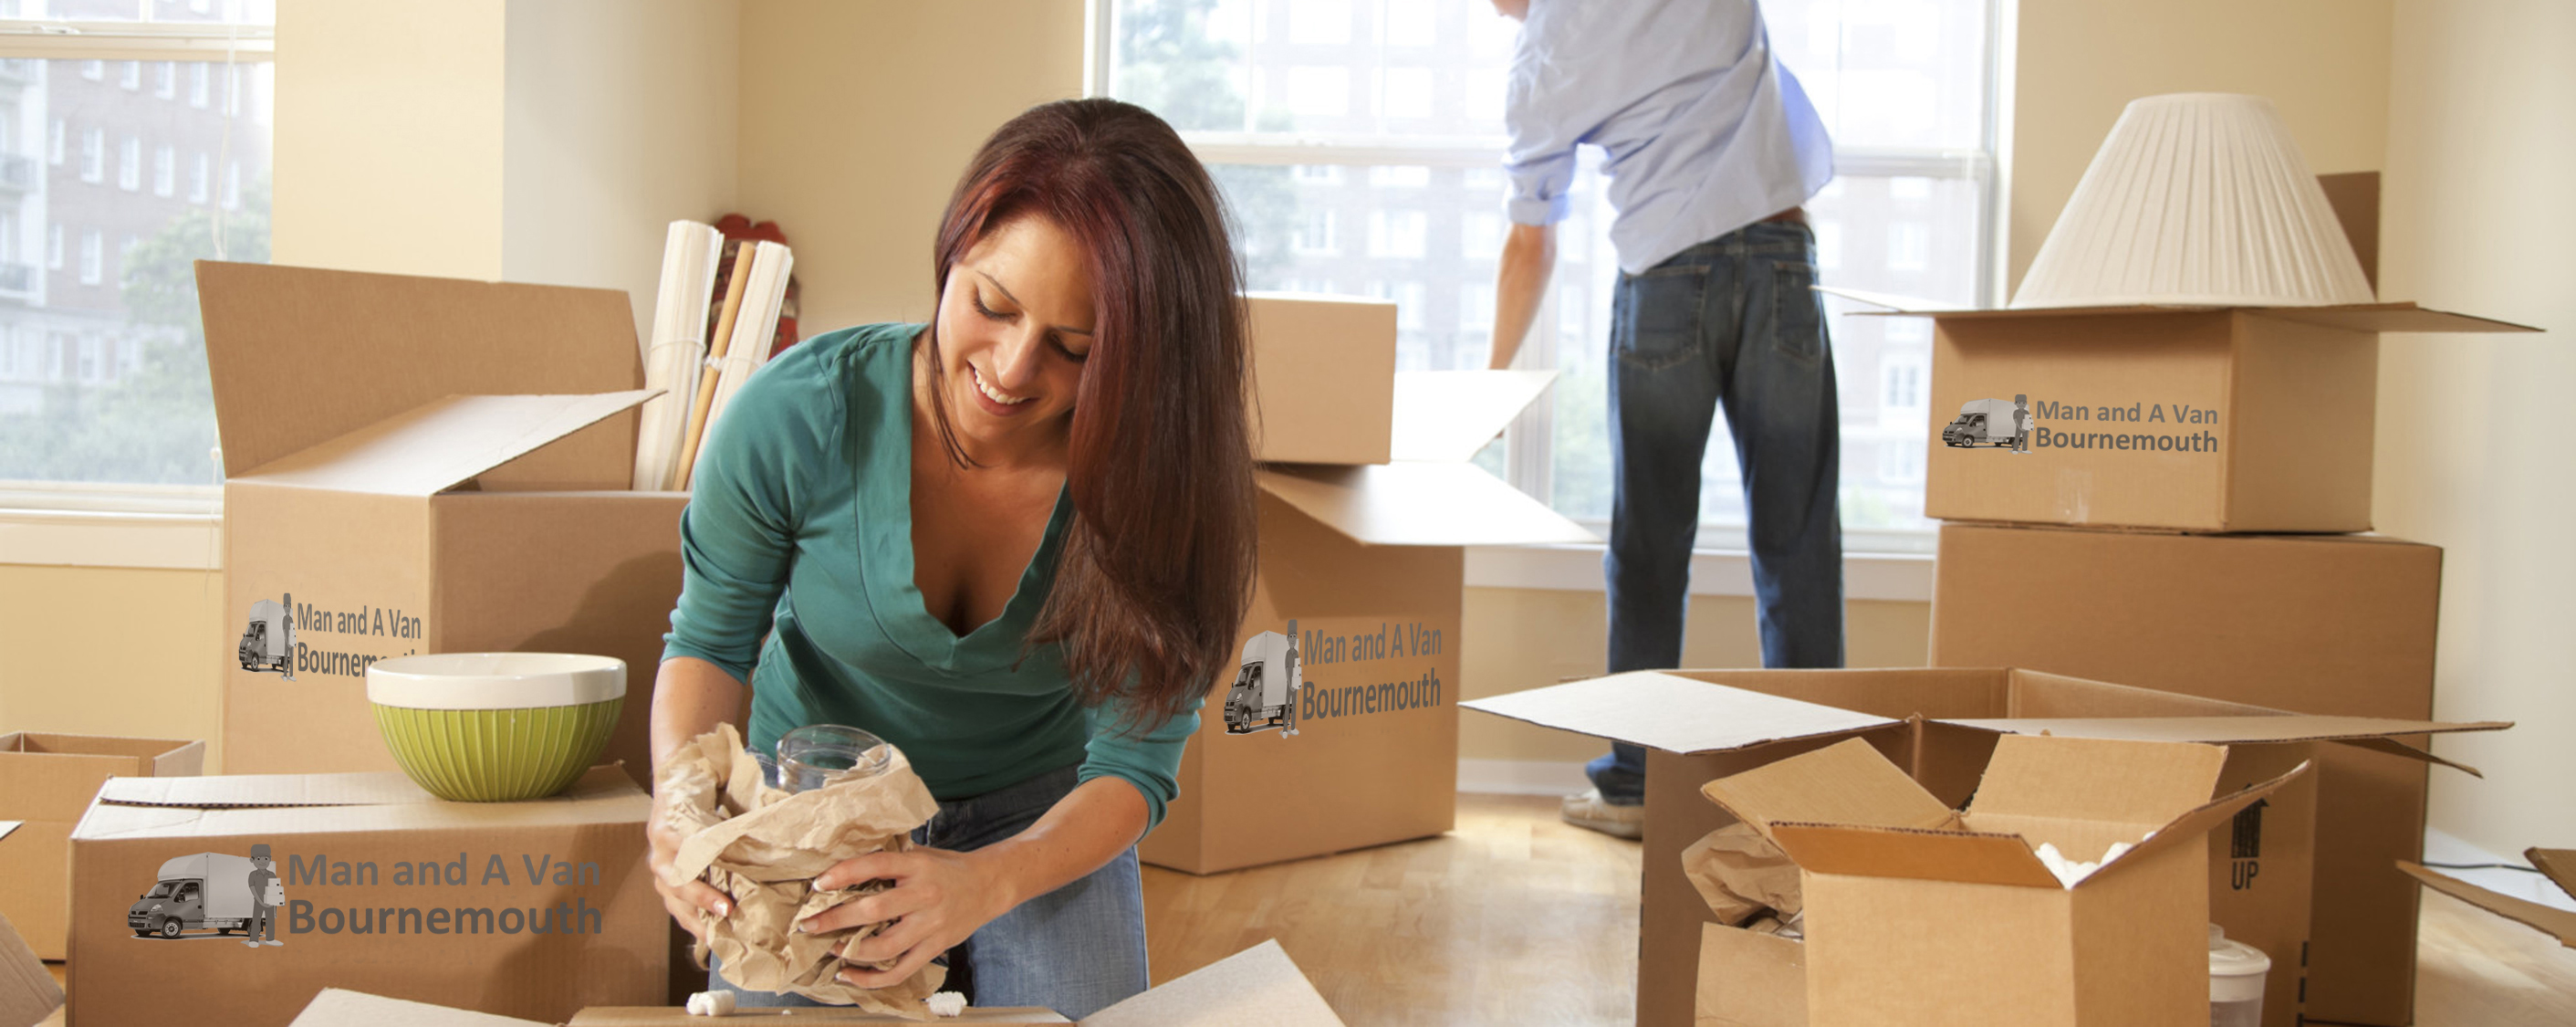 7 easy ways to take the stress out of buying your new home 1